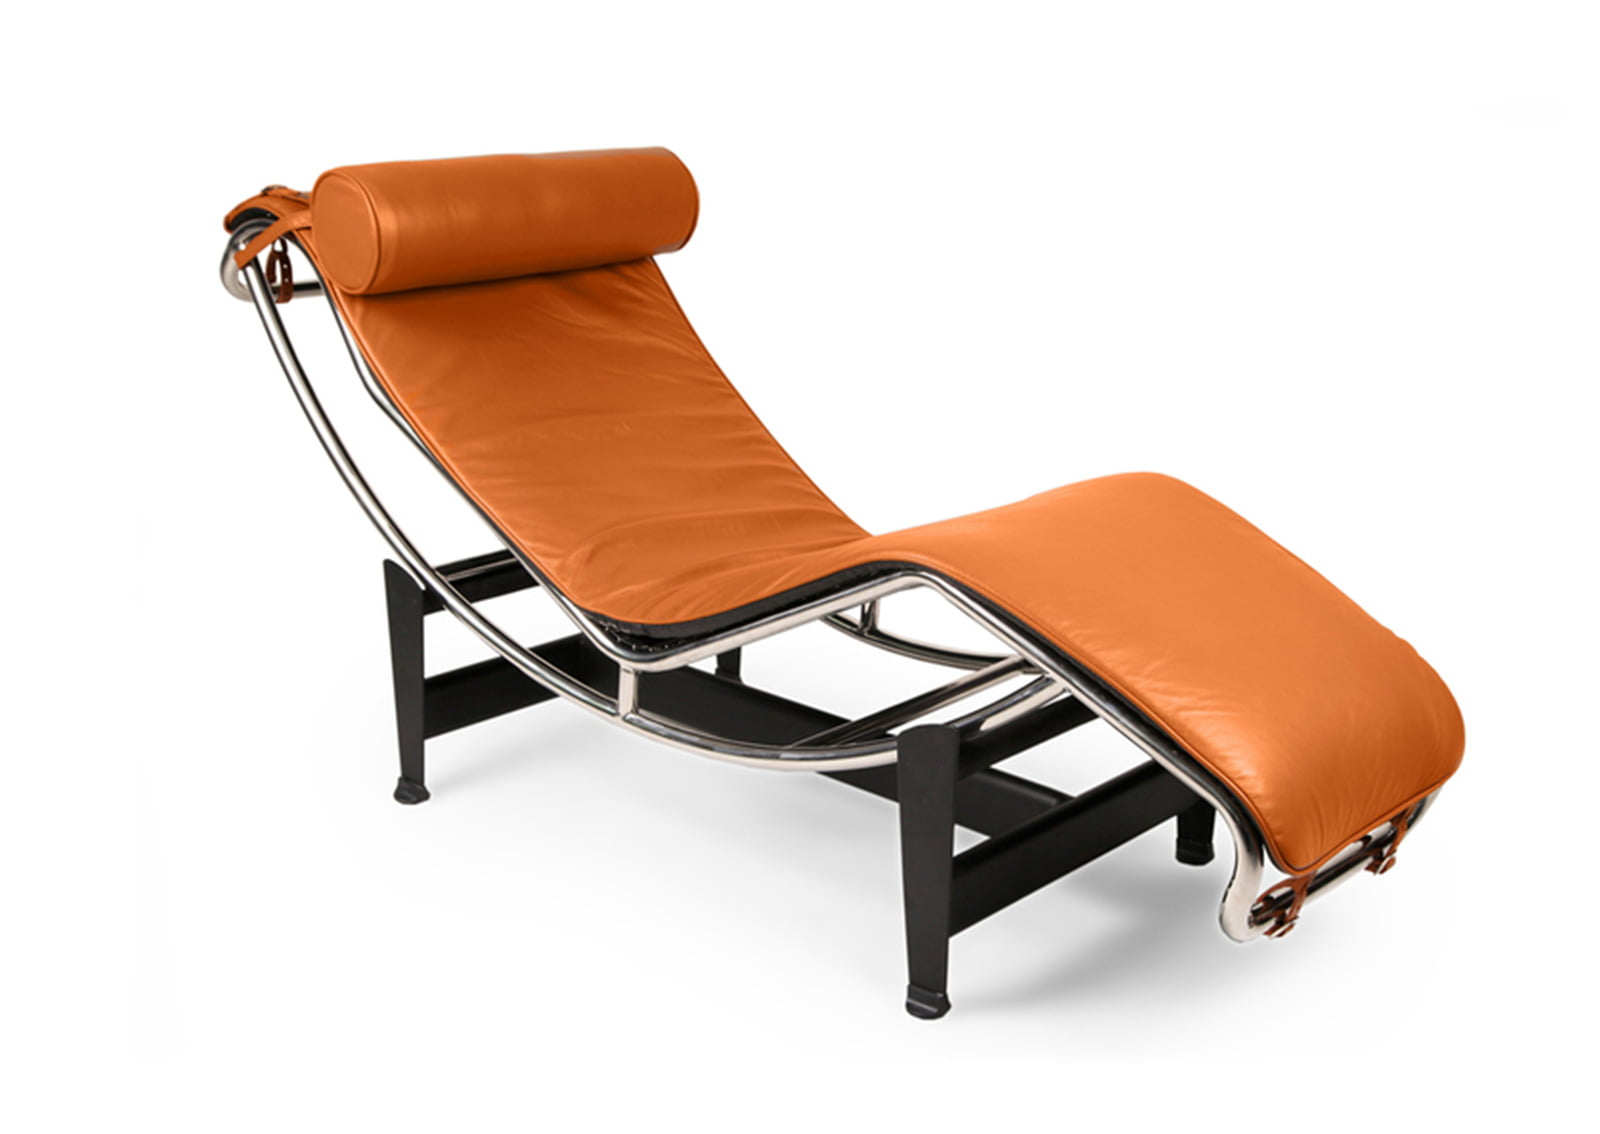 LC4 Chaise Lounge | Le Corbusier Style | FurnishPlus on le corbusier recliner, le corbusier ville contemporaine, le corbusier stool, le corbusier lounge, le corbusier loveseat, le corbusier modulor, le corbusier chair dimensions, le corbusier barcelona, le corbusier furniture, le corbusier bed, le corbusier bench, le corbusier armchair, le corbusier art, le corbusier architecture, le corbusier desk, le corbusier books, le corbusier table, le corbusier ville radieuse, le corbusier lamp, le corbusier club chair,